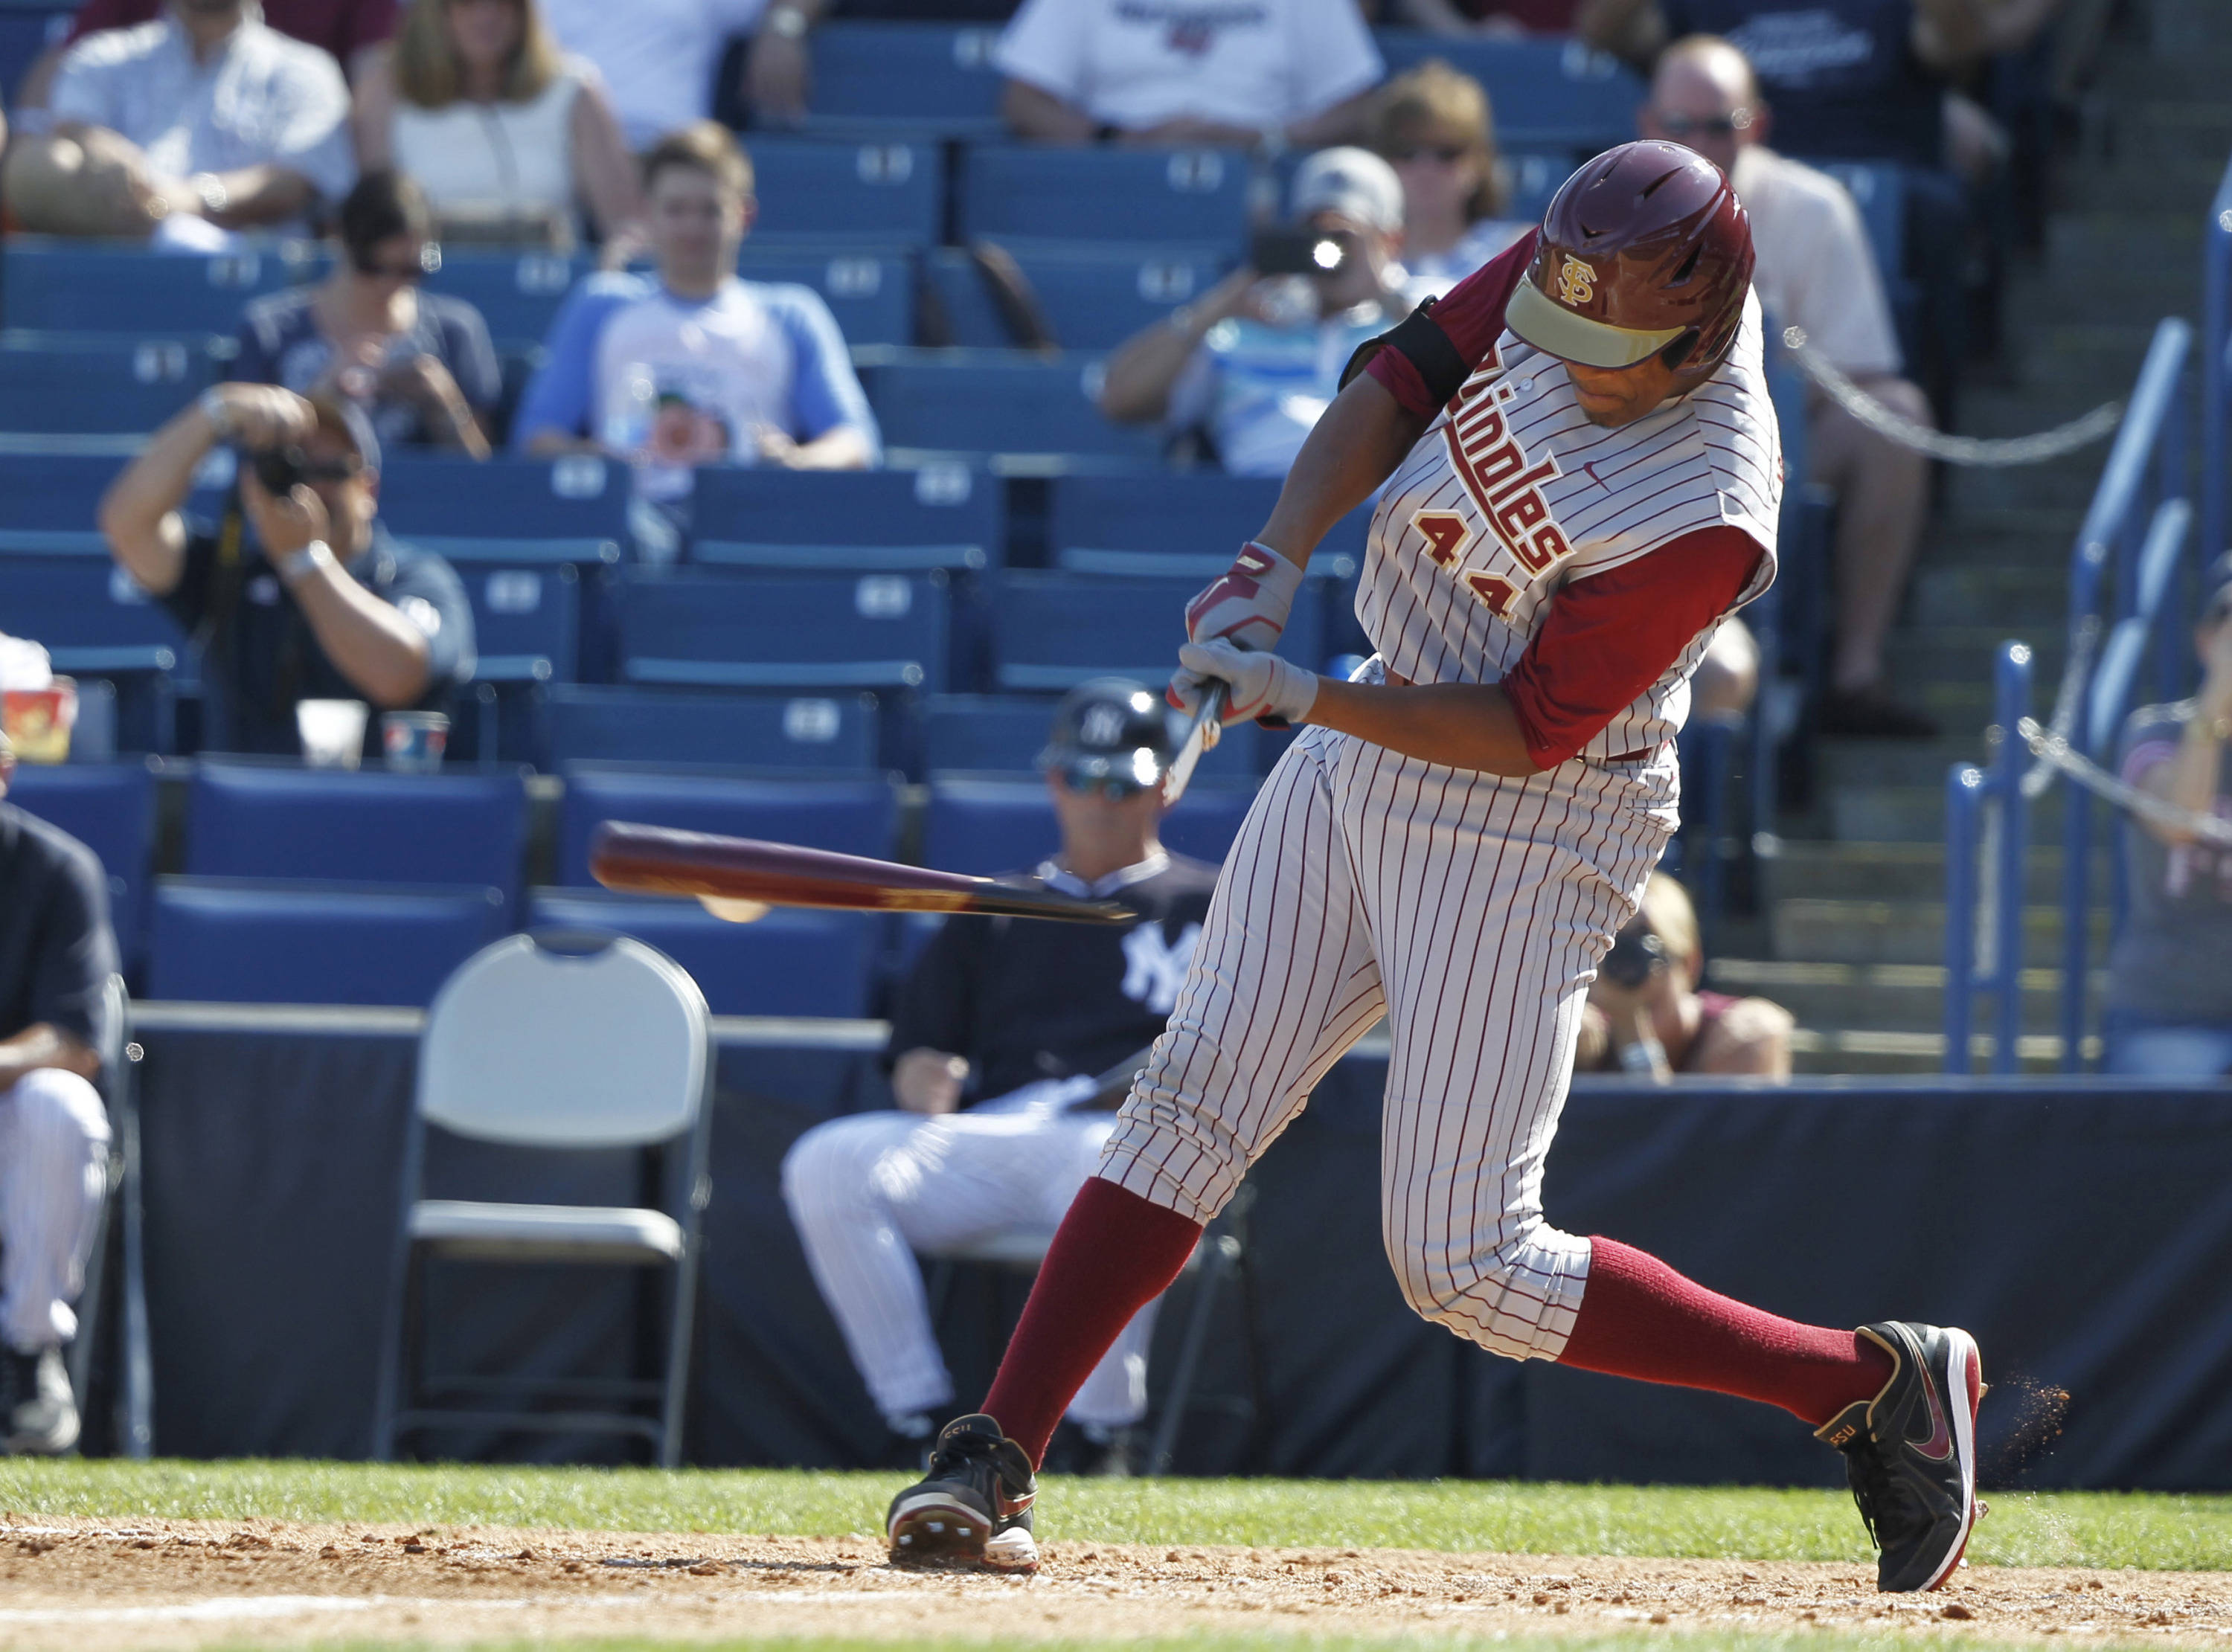 Feb 25, 2014; Tampa, FL, USA;  Florida State Seminoles pitcher/outfielder Jameis Winston (44) breaks his bat during the sixth inning against the New York Yankees at George M. Steinbrenner Field. Mandatory Credit: Kim Klement-USA TODAY Sports